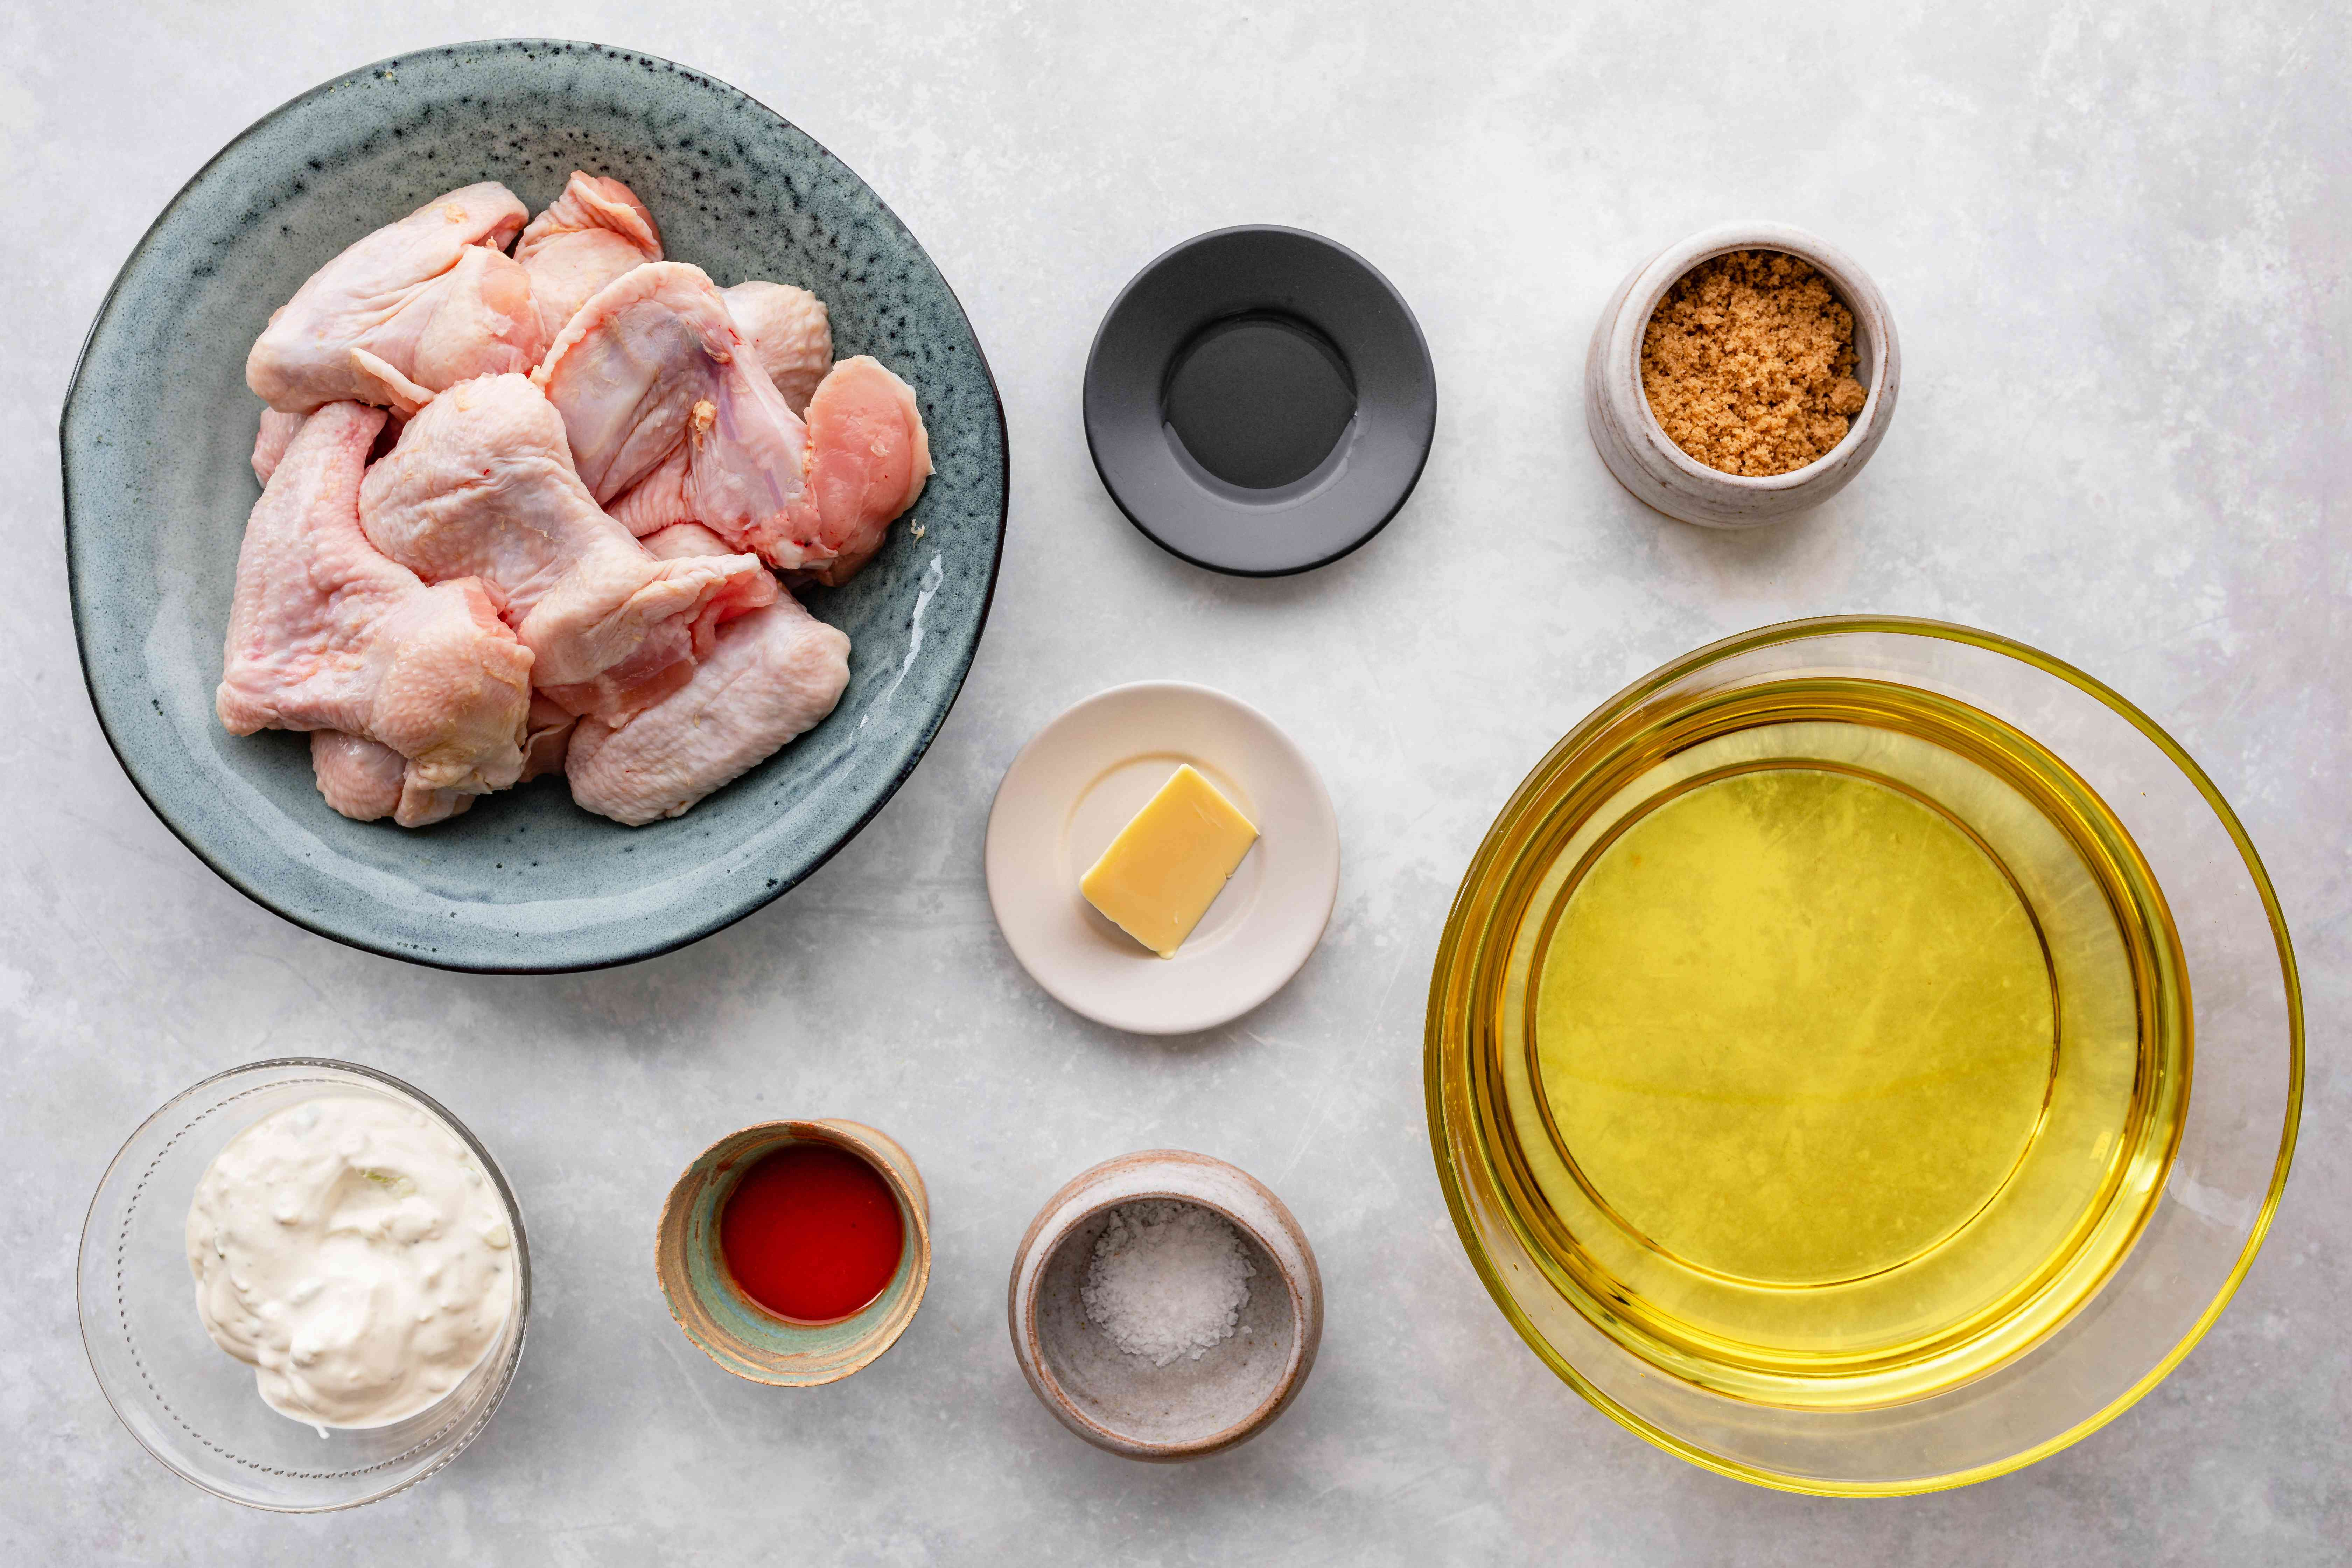 Ingredients for authentic Buffalo wings